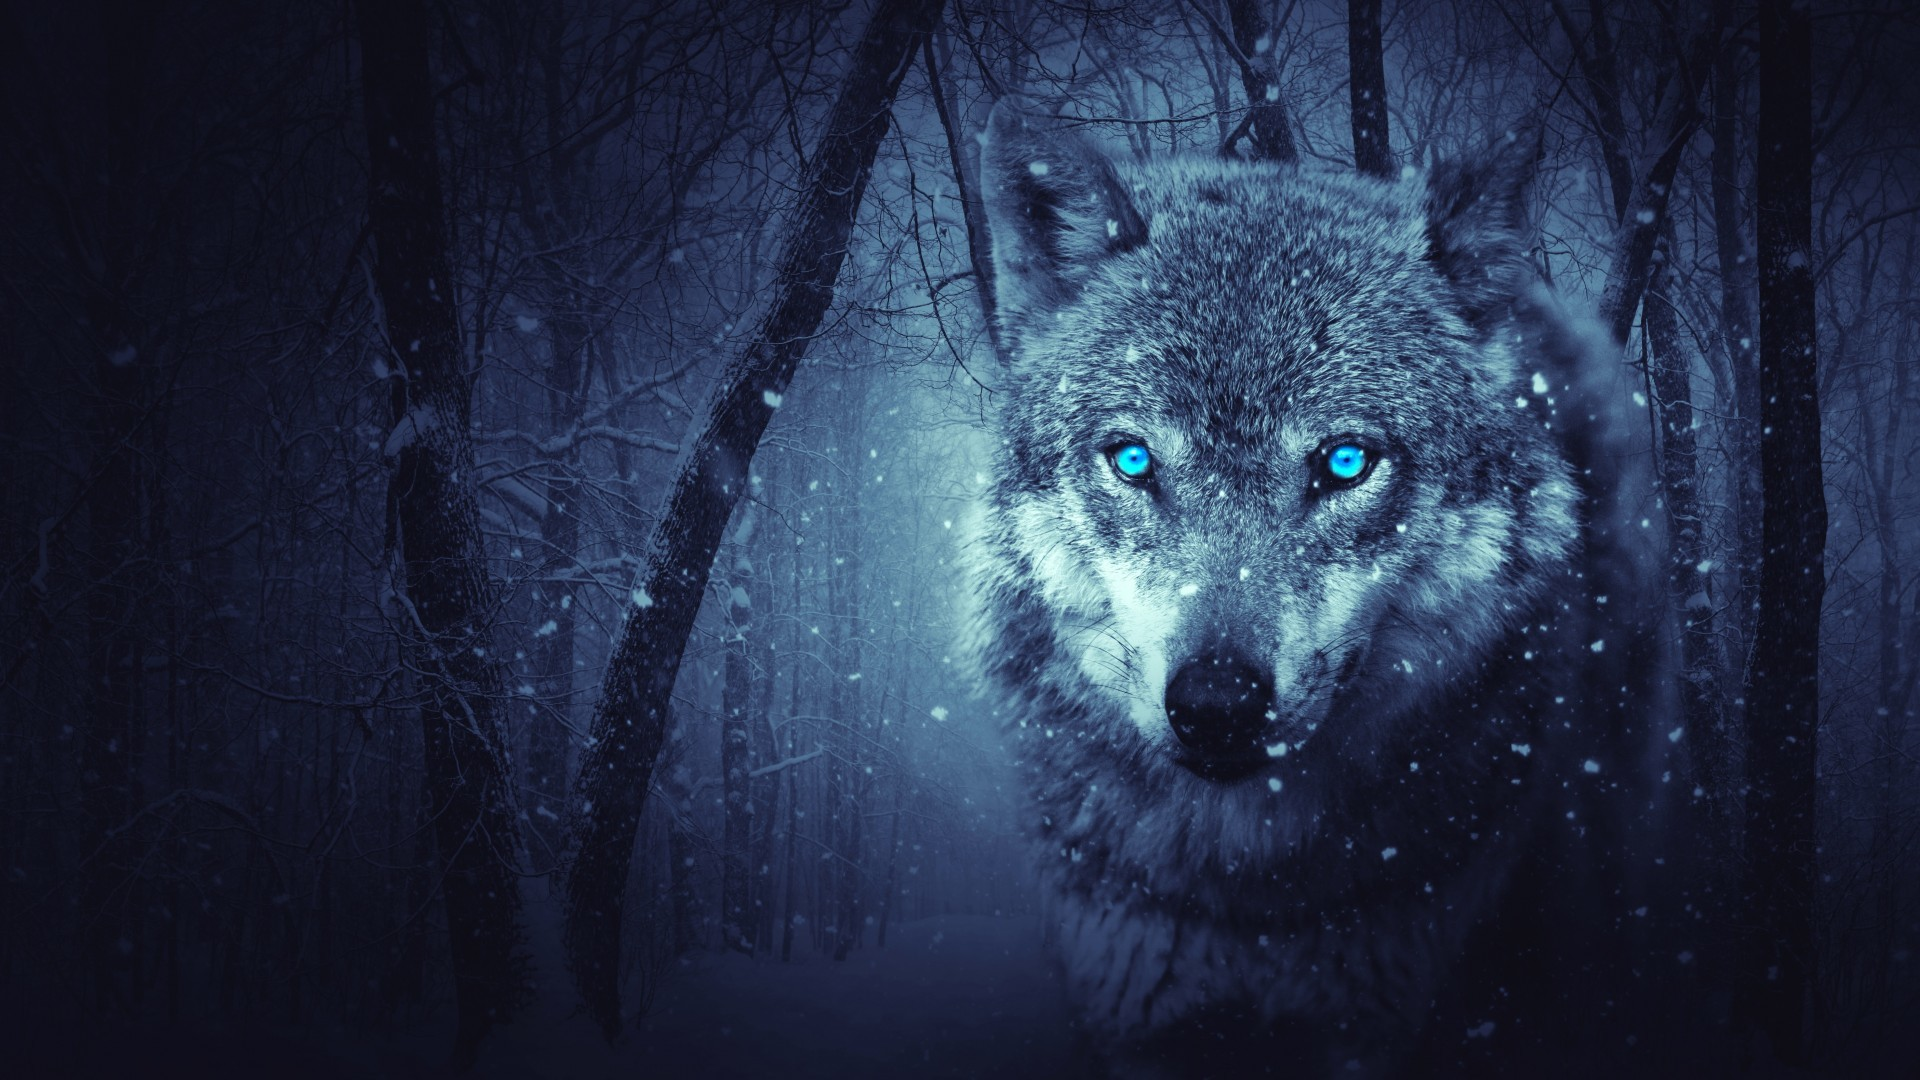 1920x1080 Wold Wolf Blue Eyes Scary Snowfall Winter Hd Wallpaper